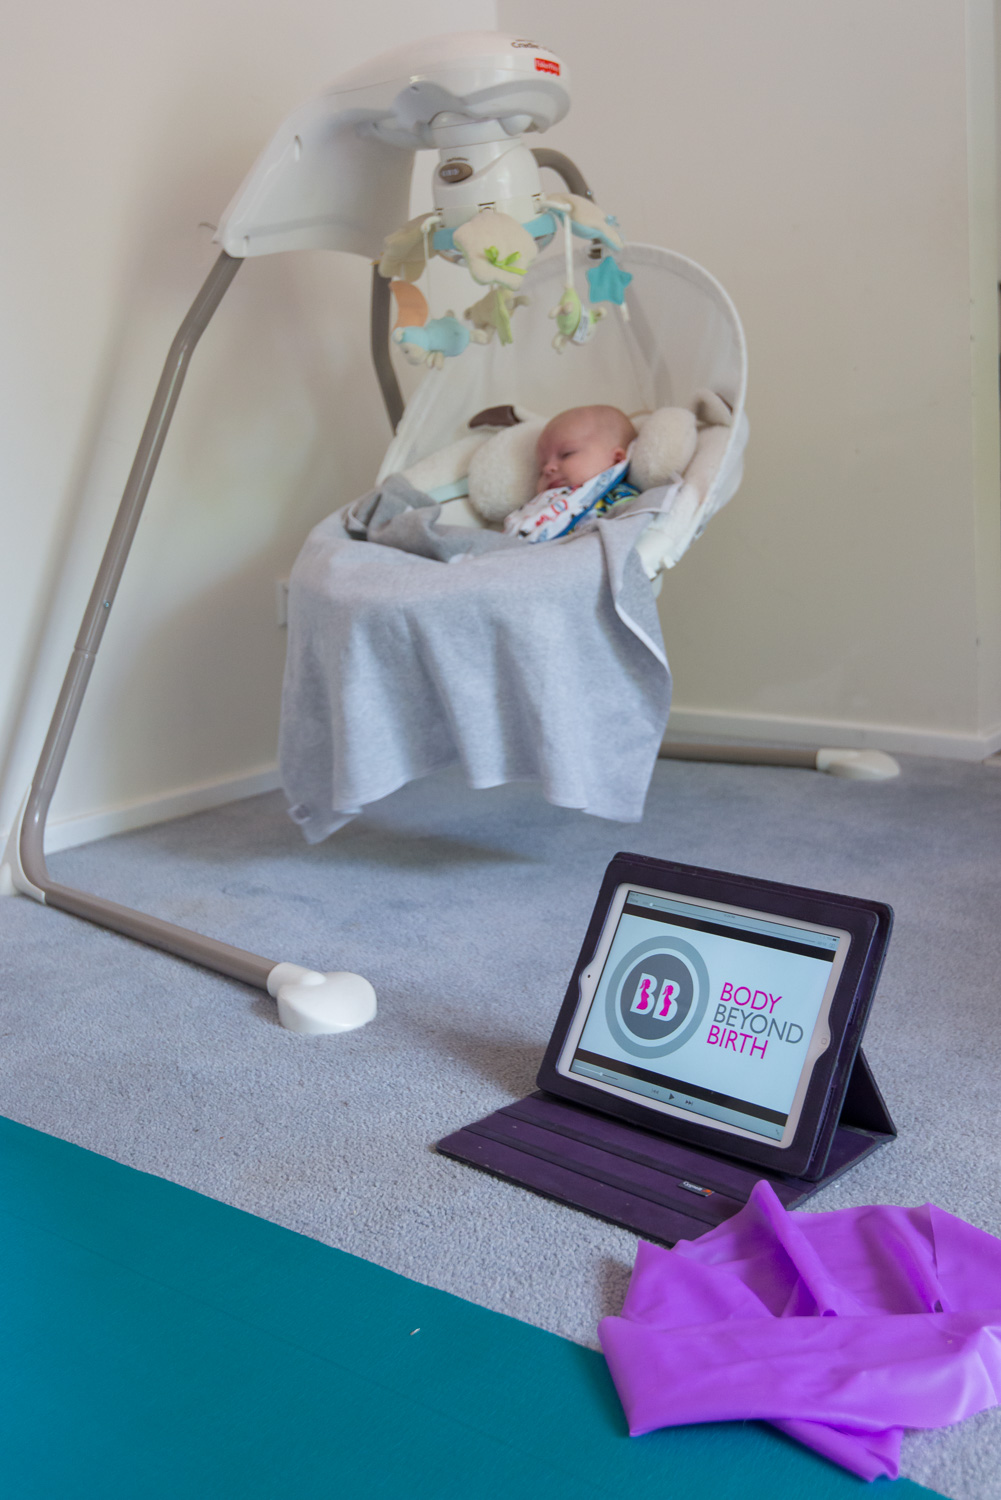 Completing my online workout while Bub slept in his swing